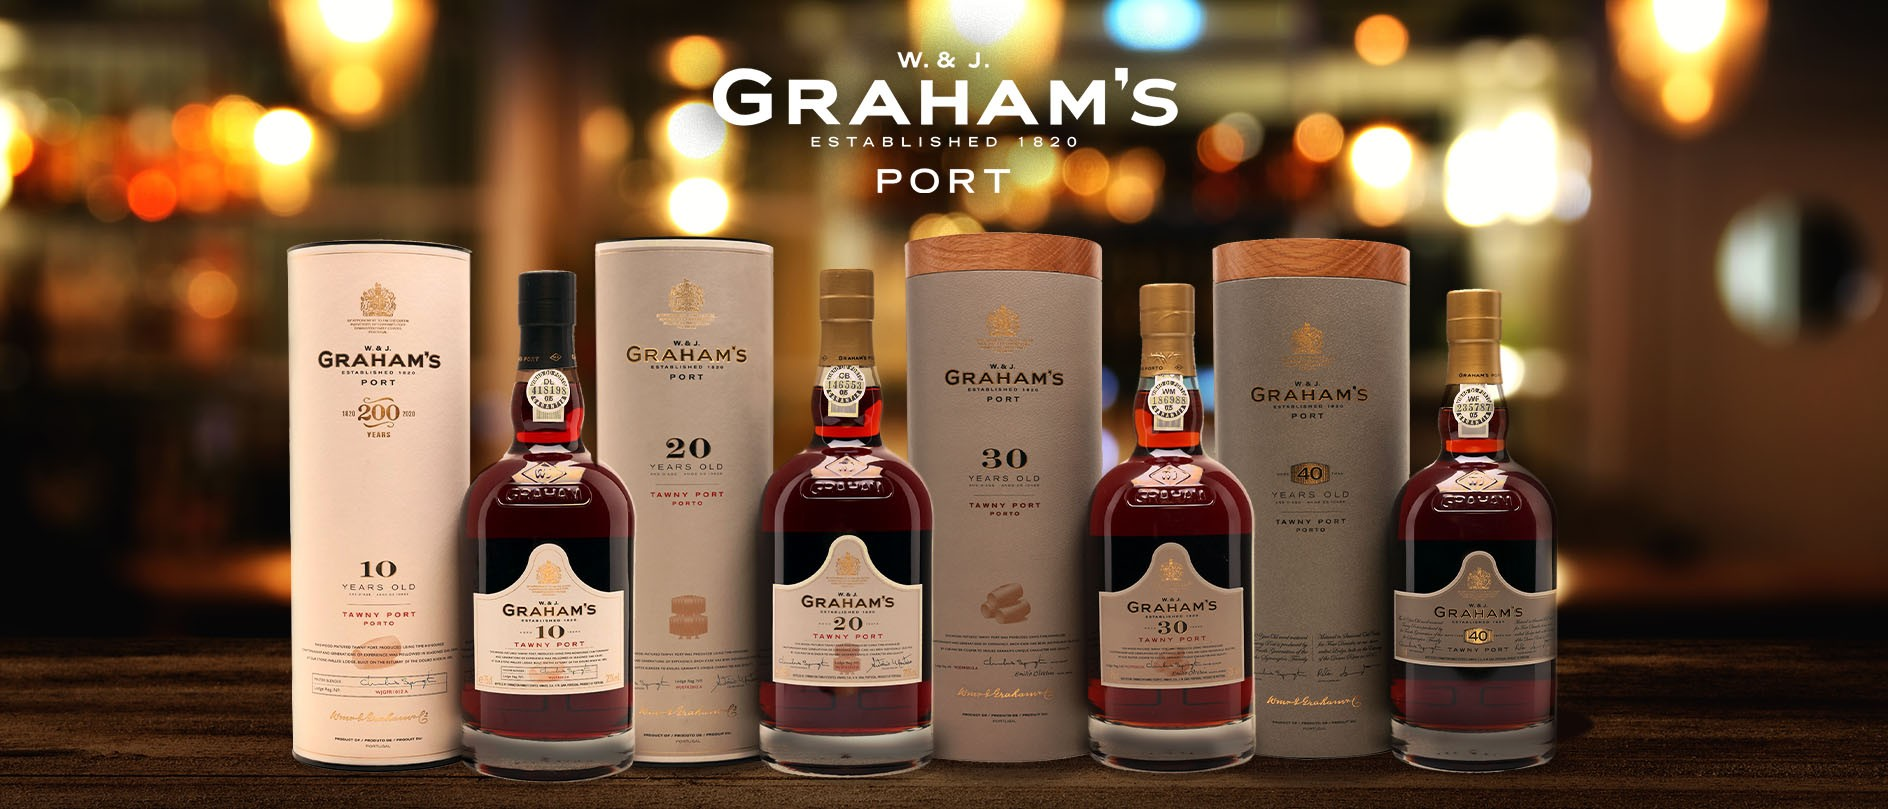 Graham's Vintage Port Wines